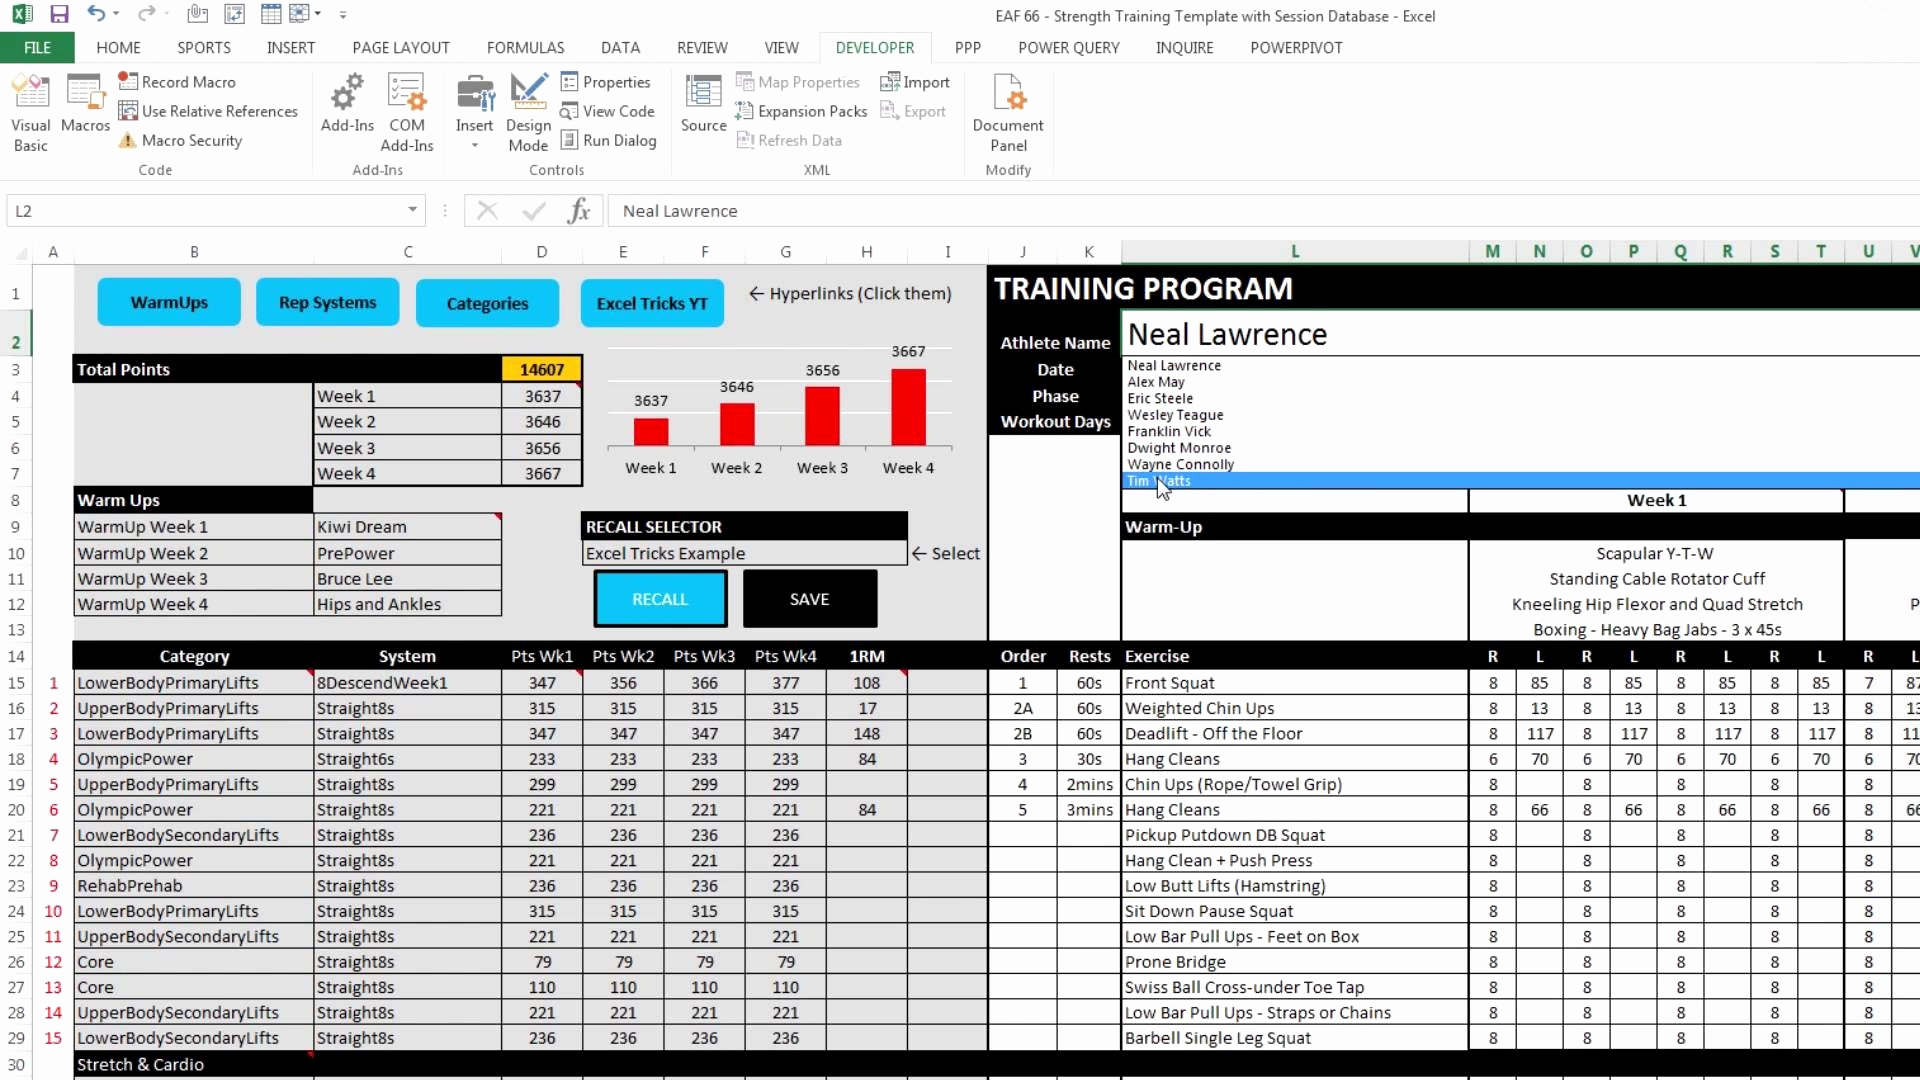 crm excel sheet download example of spreadshee crm excel sheet download. Black Bedroom Furniture Sets. Home Design Ideas